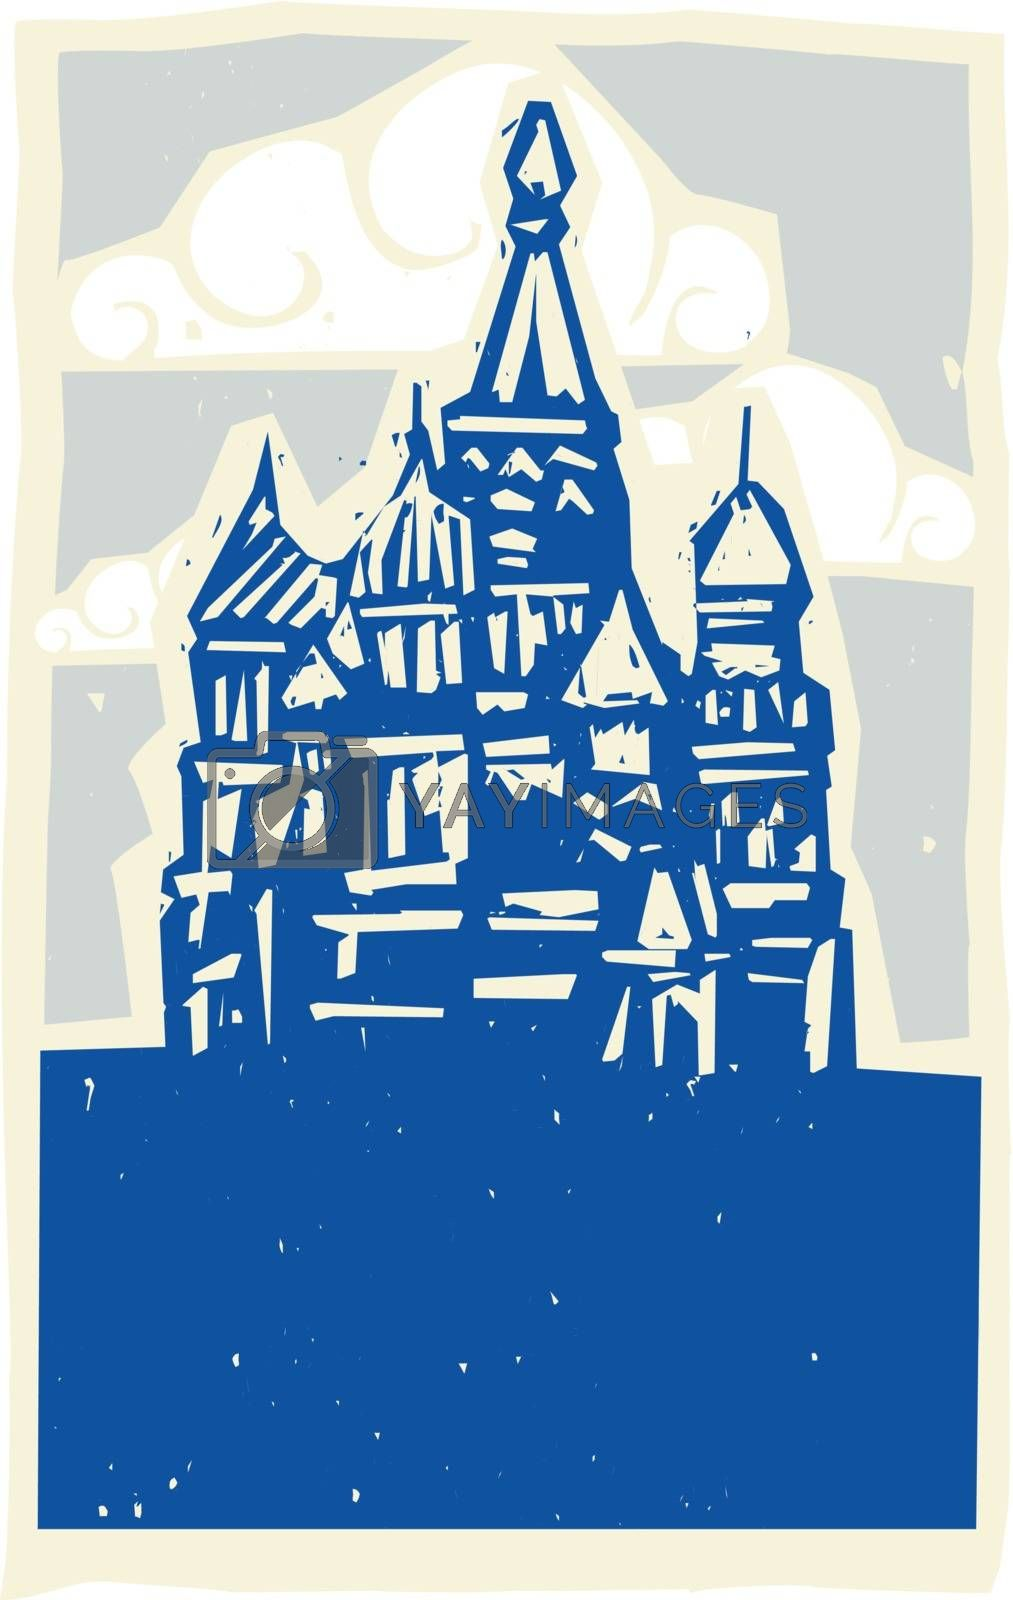 Woodcut style Soviet Design type illustration of the Kremlin in Moscow